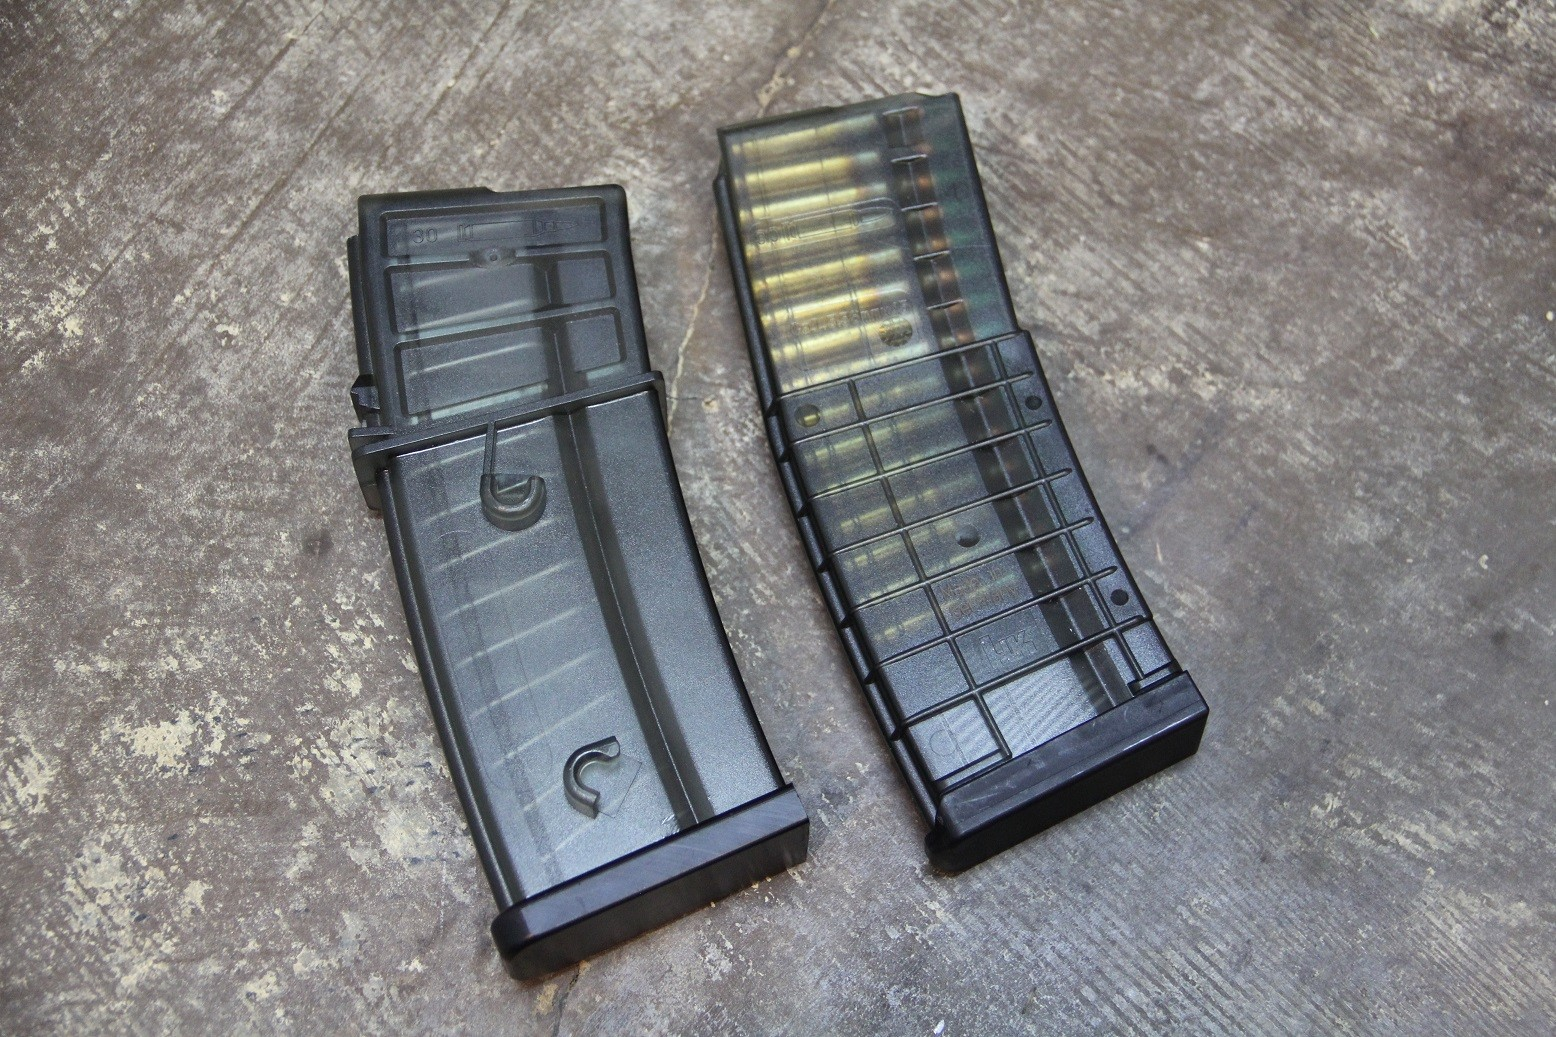 new h k polymer magazines the firearm blogthe firearm blog. Black Bedroom Furniture Sets. Home Design Ideas